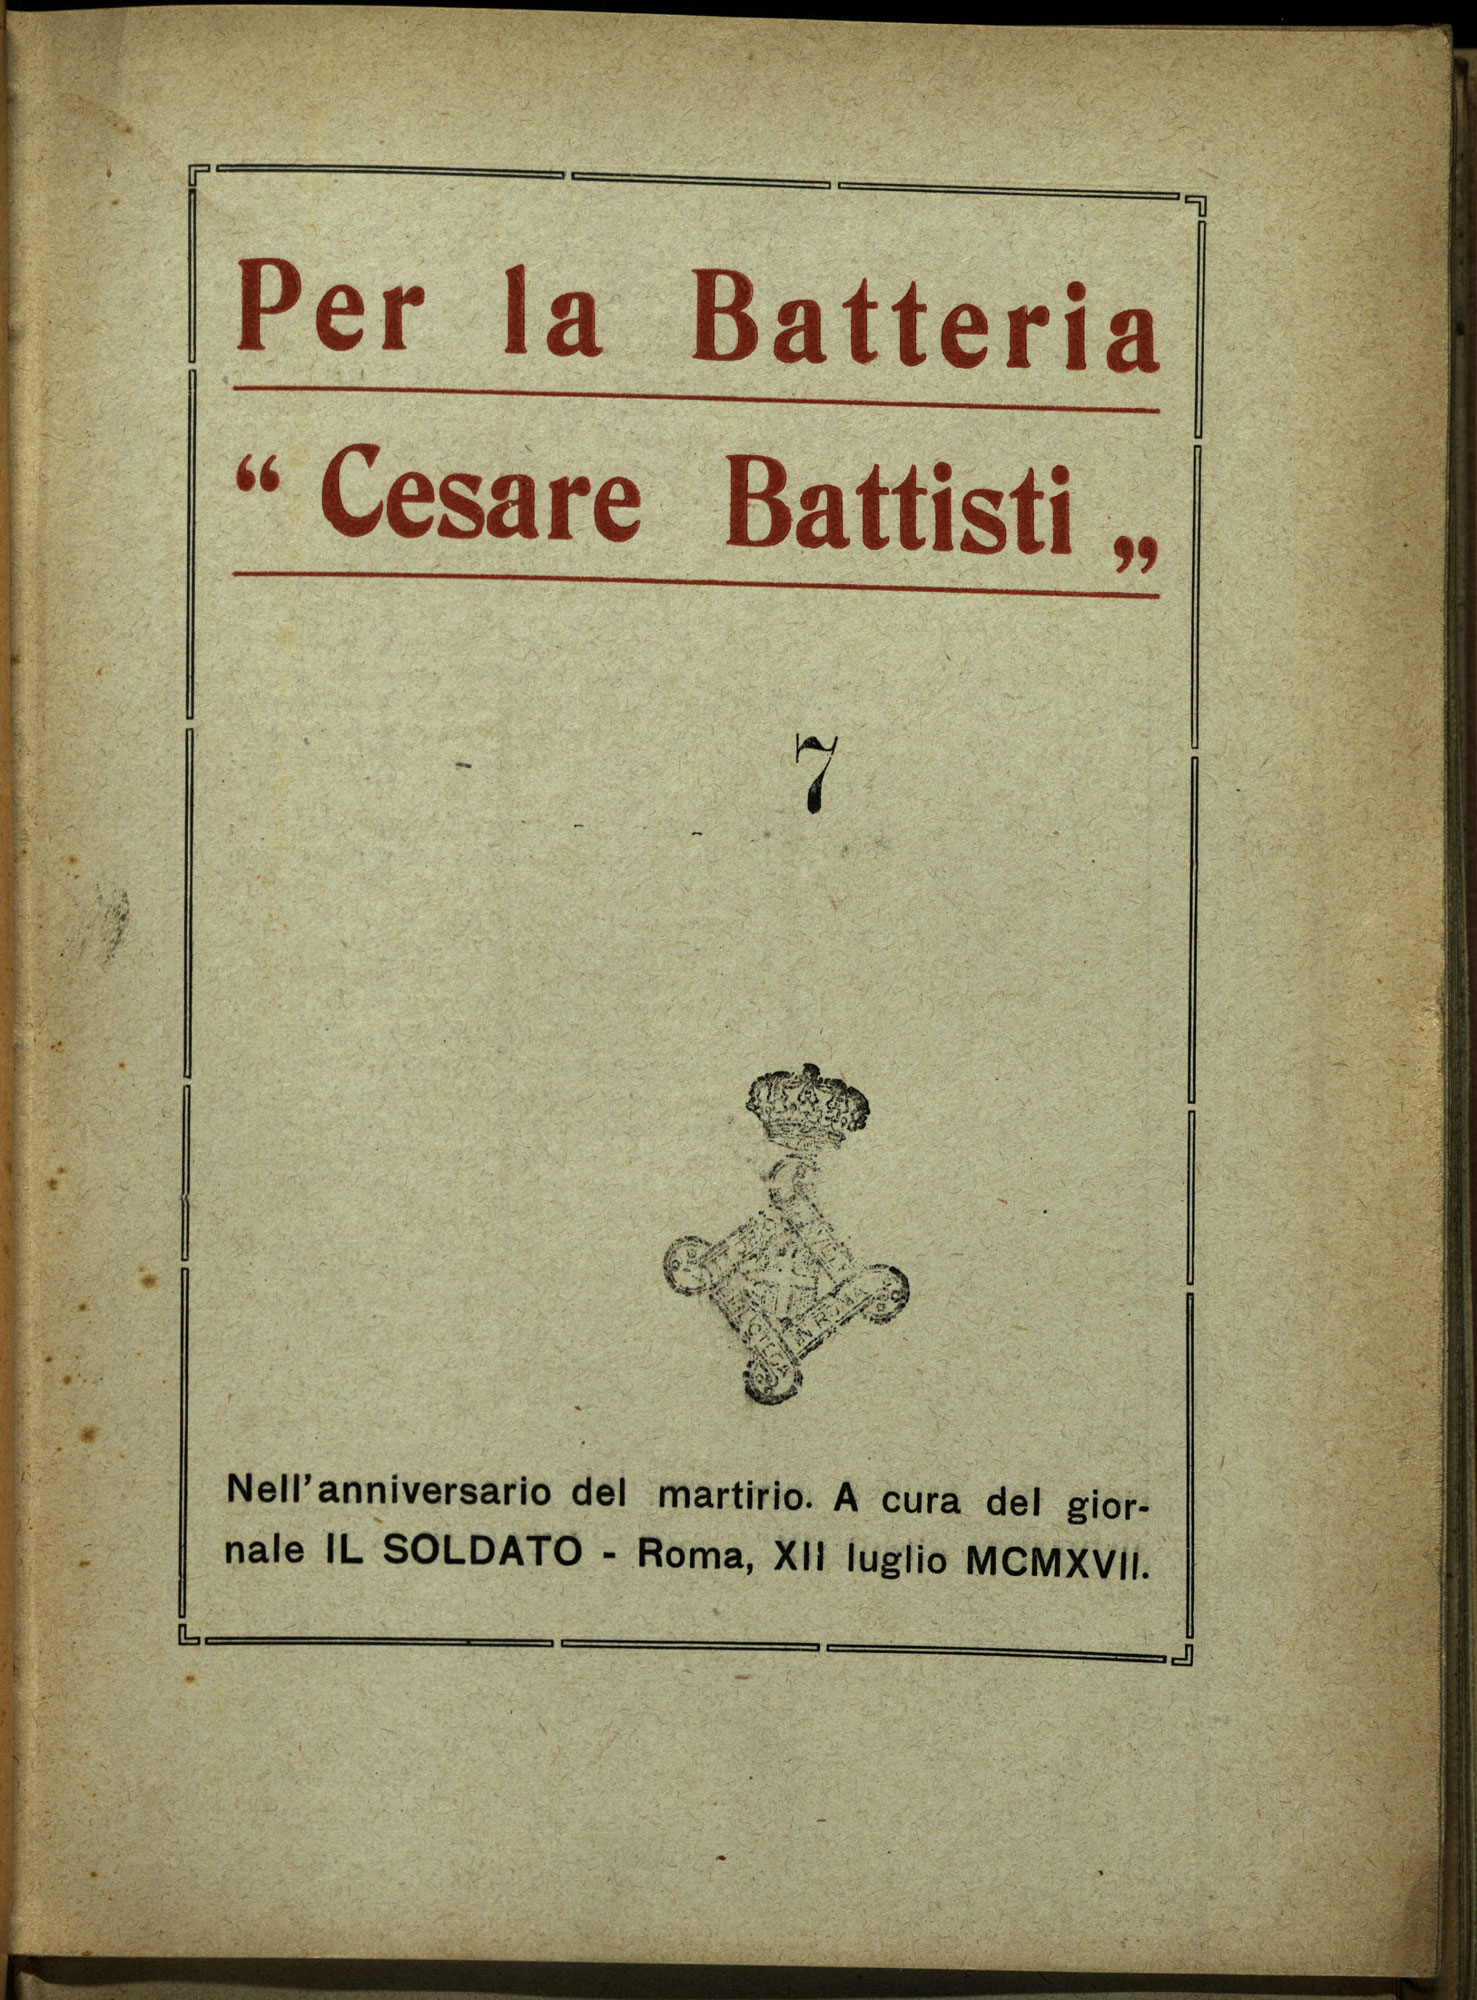 For the battery Cesare Battisti